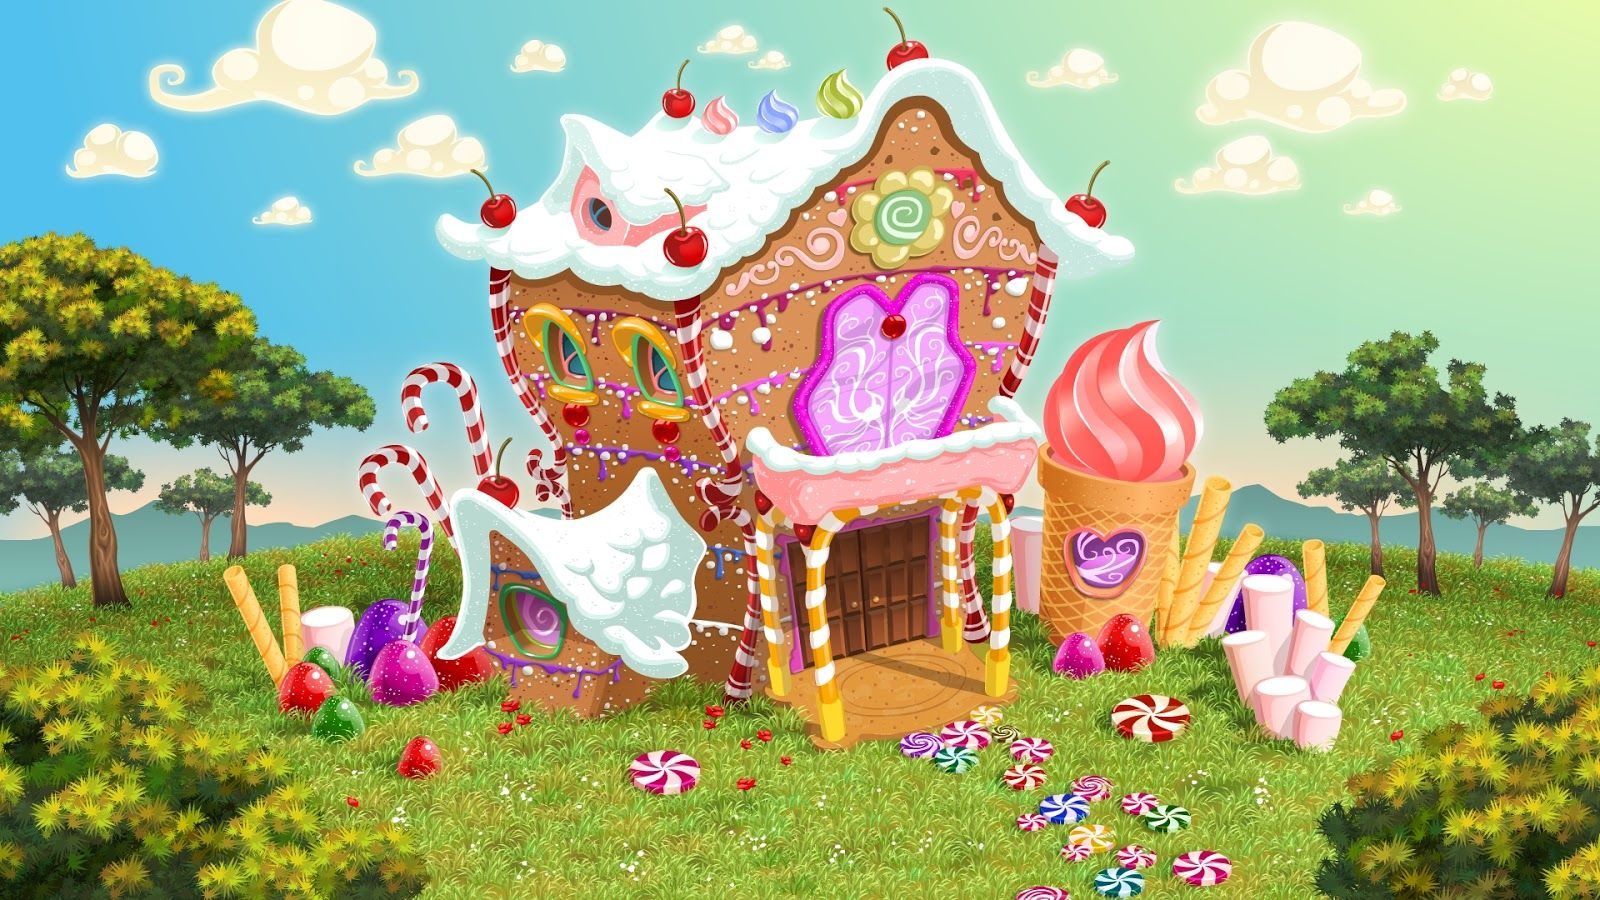 15+ Hansel and gretel house ideas in 2021